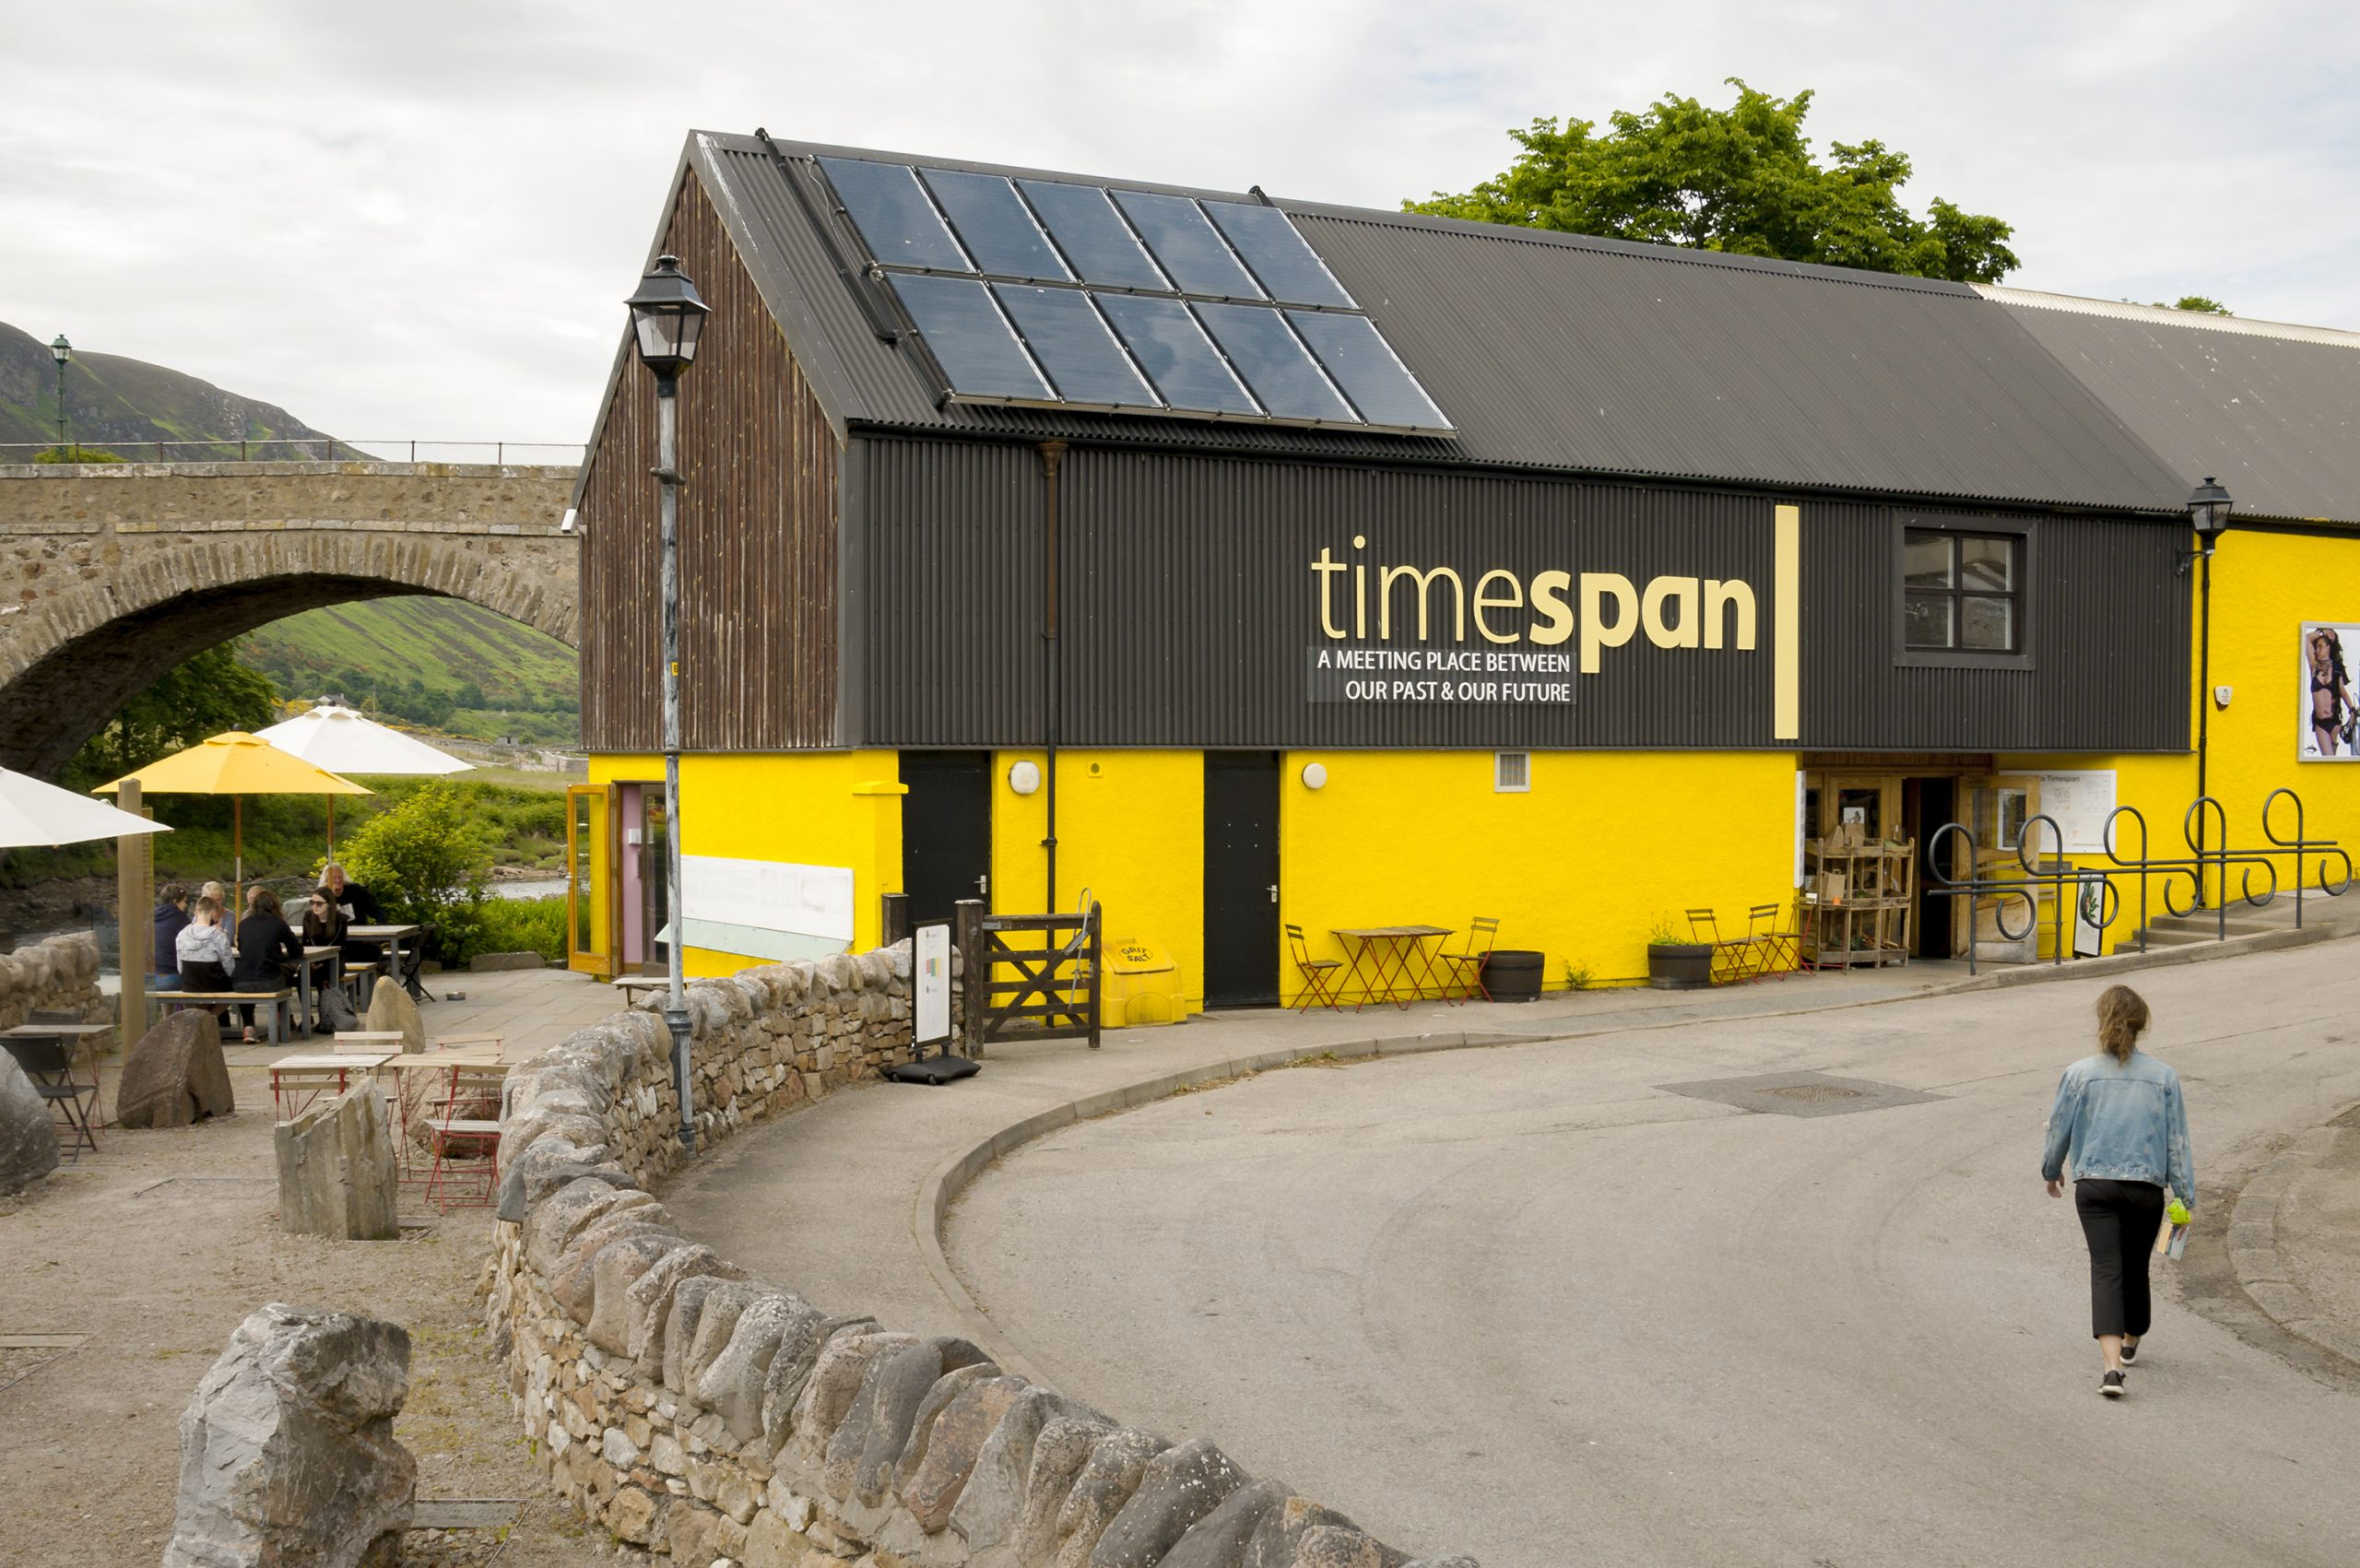 Timespan nominated for Museum of the Year 2021